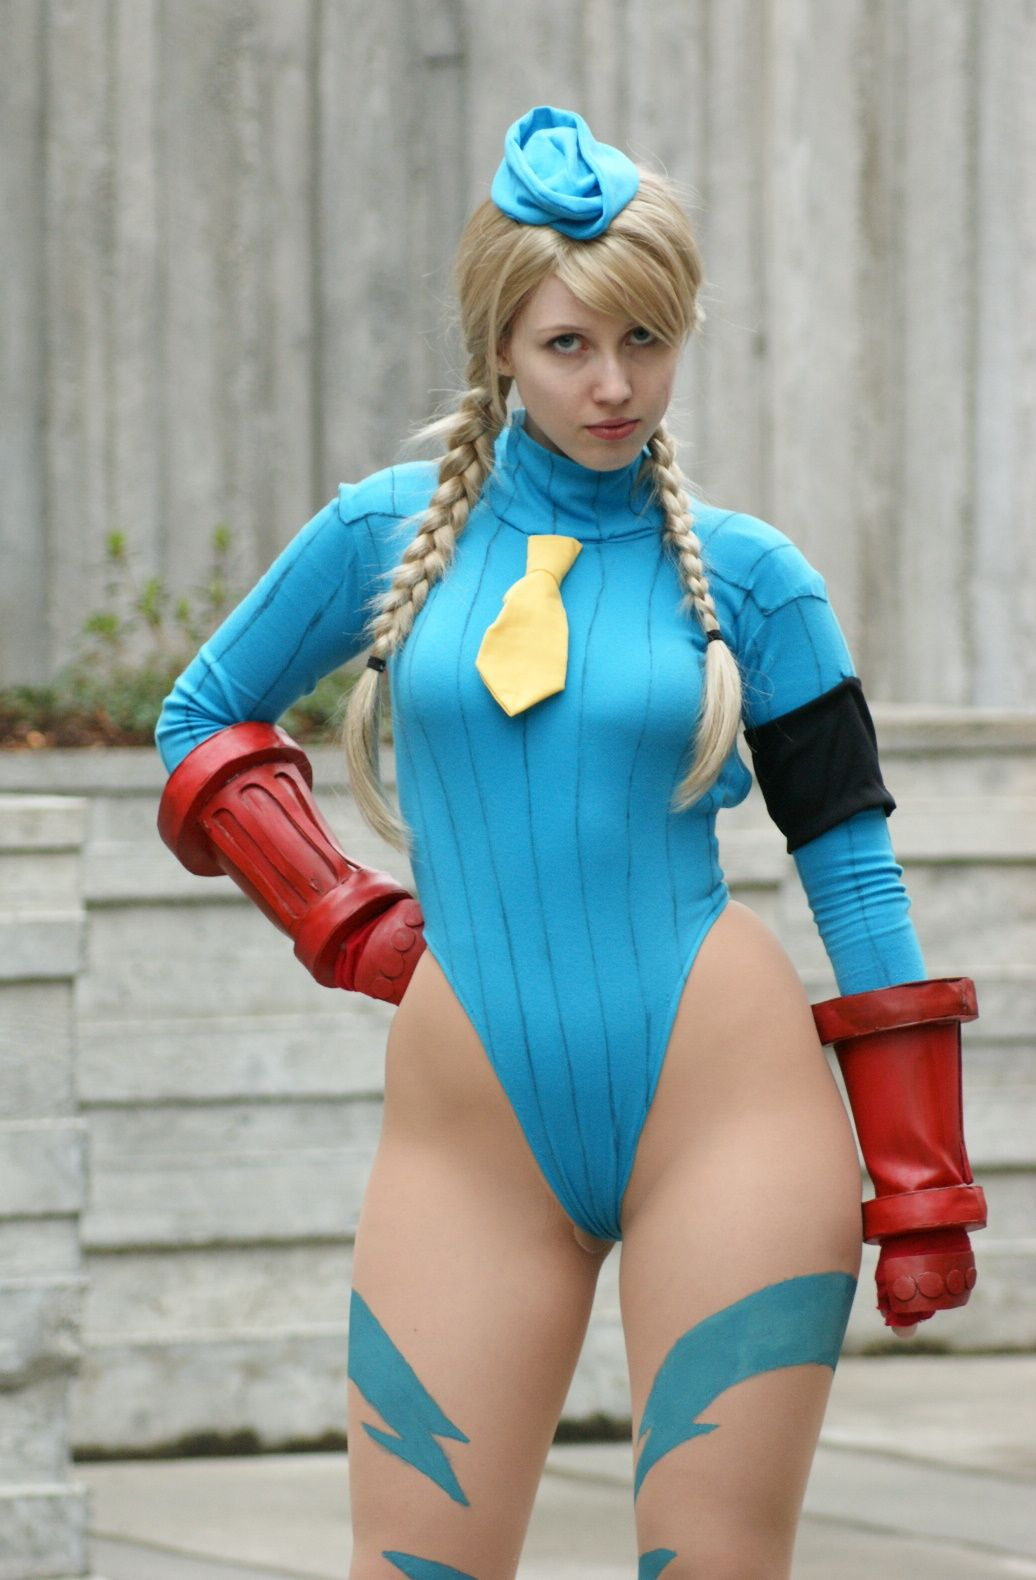 Street fighter cammy cosplay ass